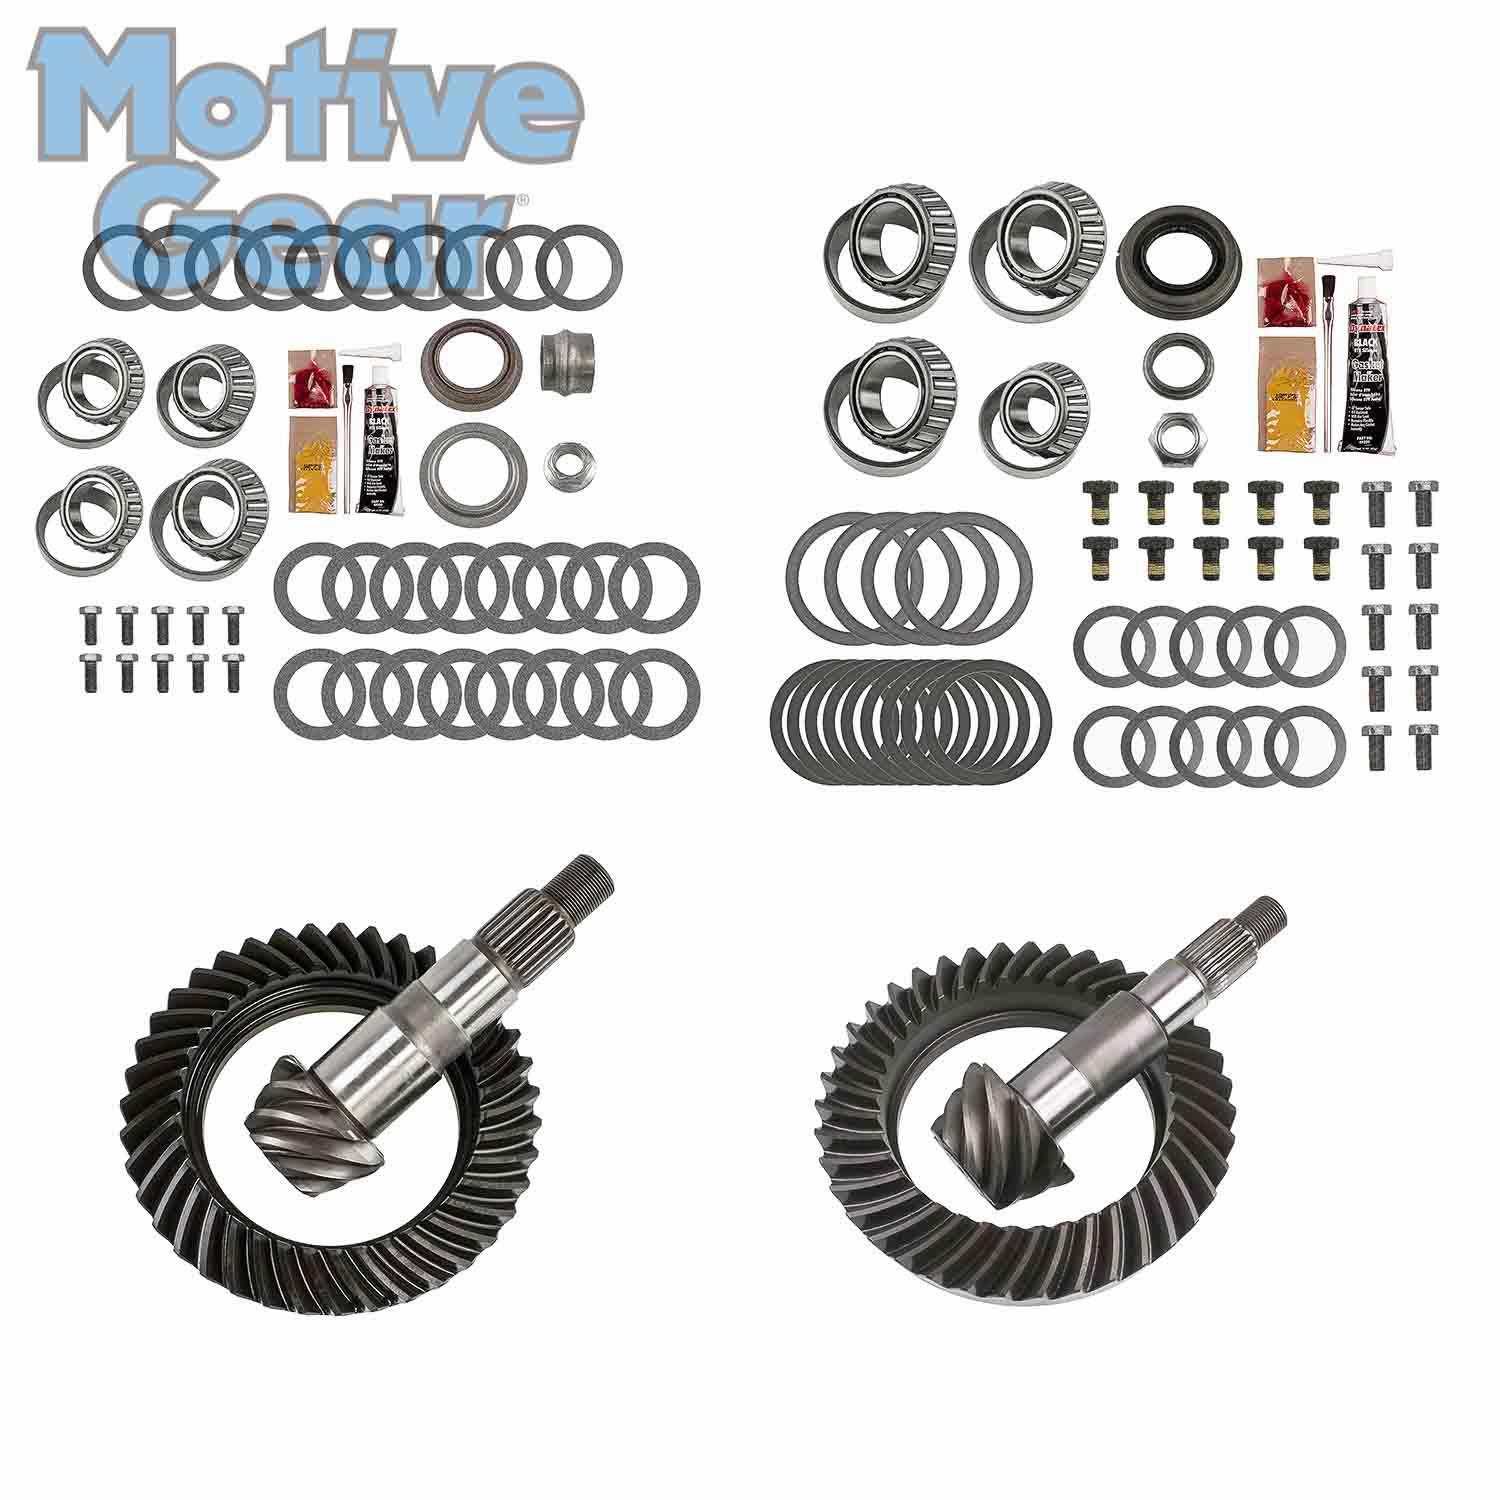 MGK-102 Motive Gear/Midwest Truck Differential Ring and Pinion DANA